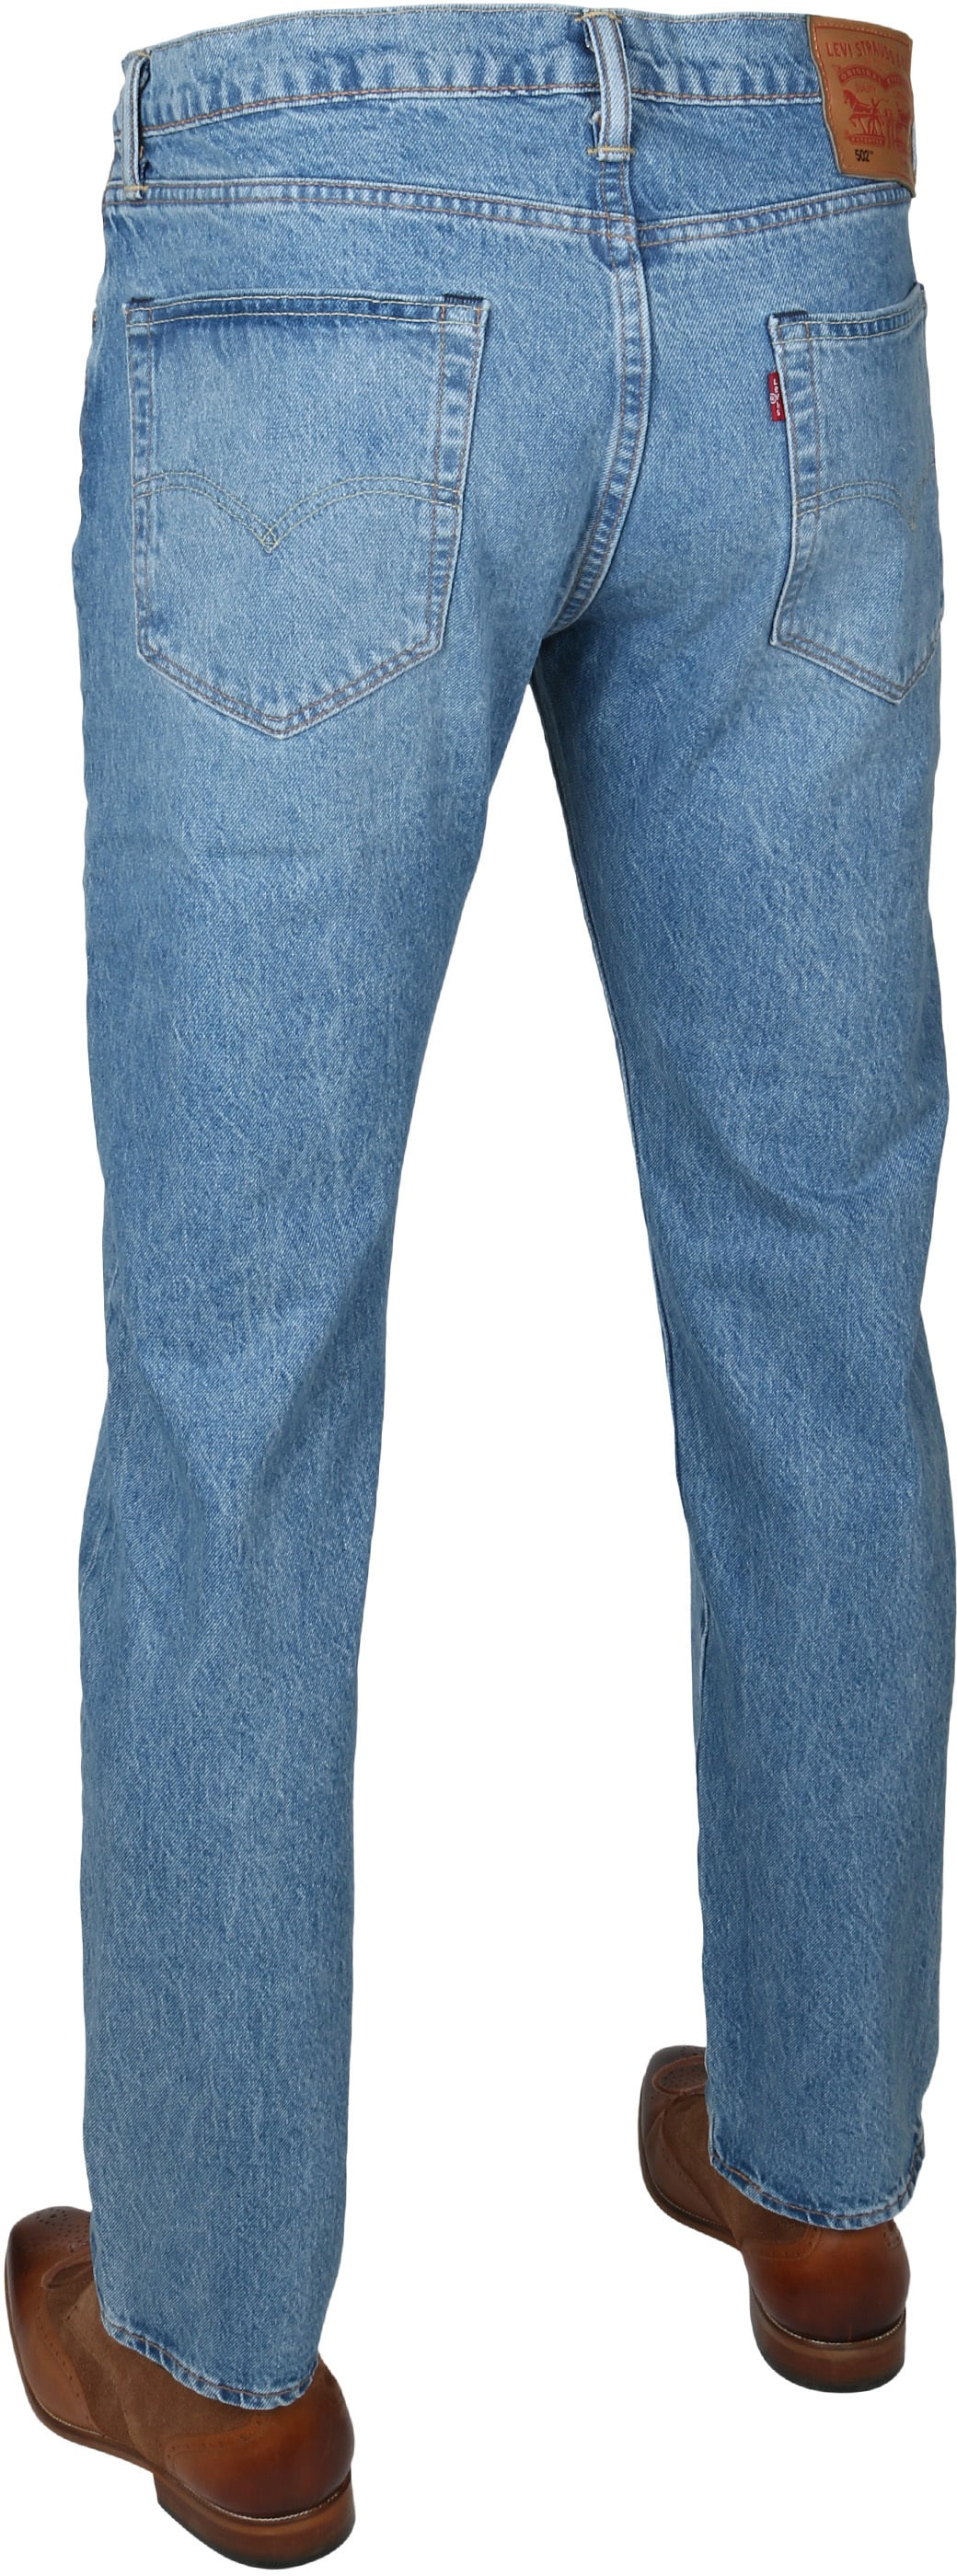 Levi's 502 Jeans Regular Fit foto 2